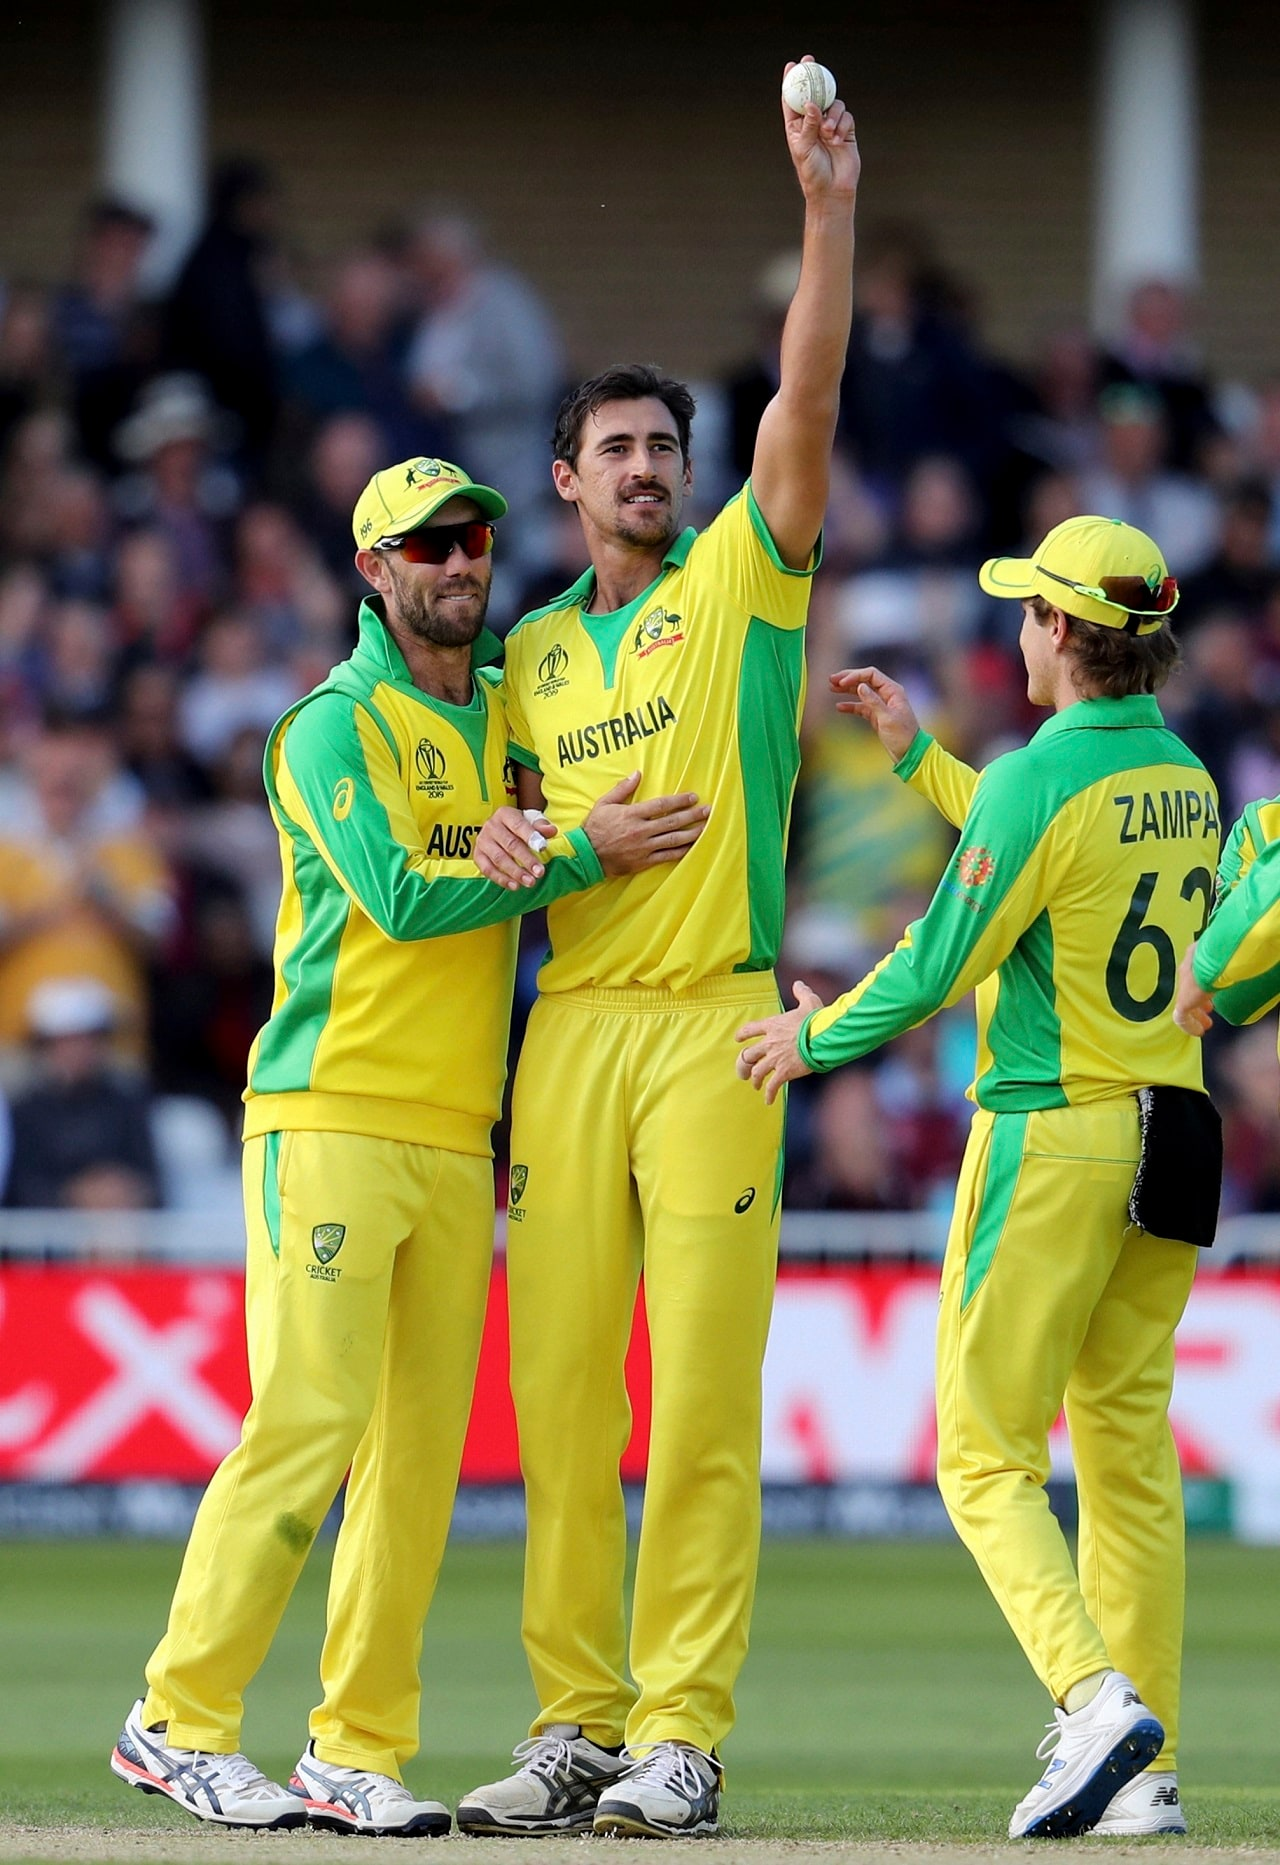 Australia's Mitchell Starc, center, holds up the ball to celebrate the dismissal of West Indies' Sheldon Cottrell during the Cricket World Cup match between Australia and West Indies at Trent Bridge in Nottingham, Thursday, June 6, 2019. AP/PTI(AP6_6_2019_000161B)